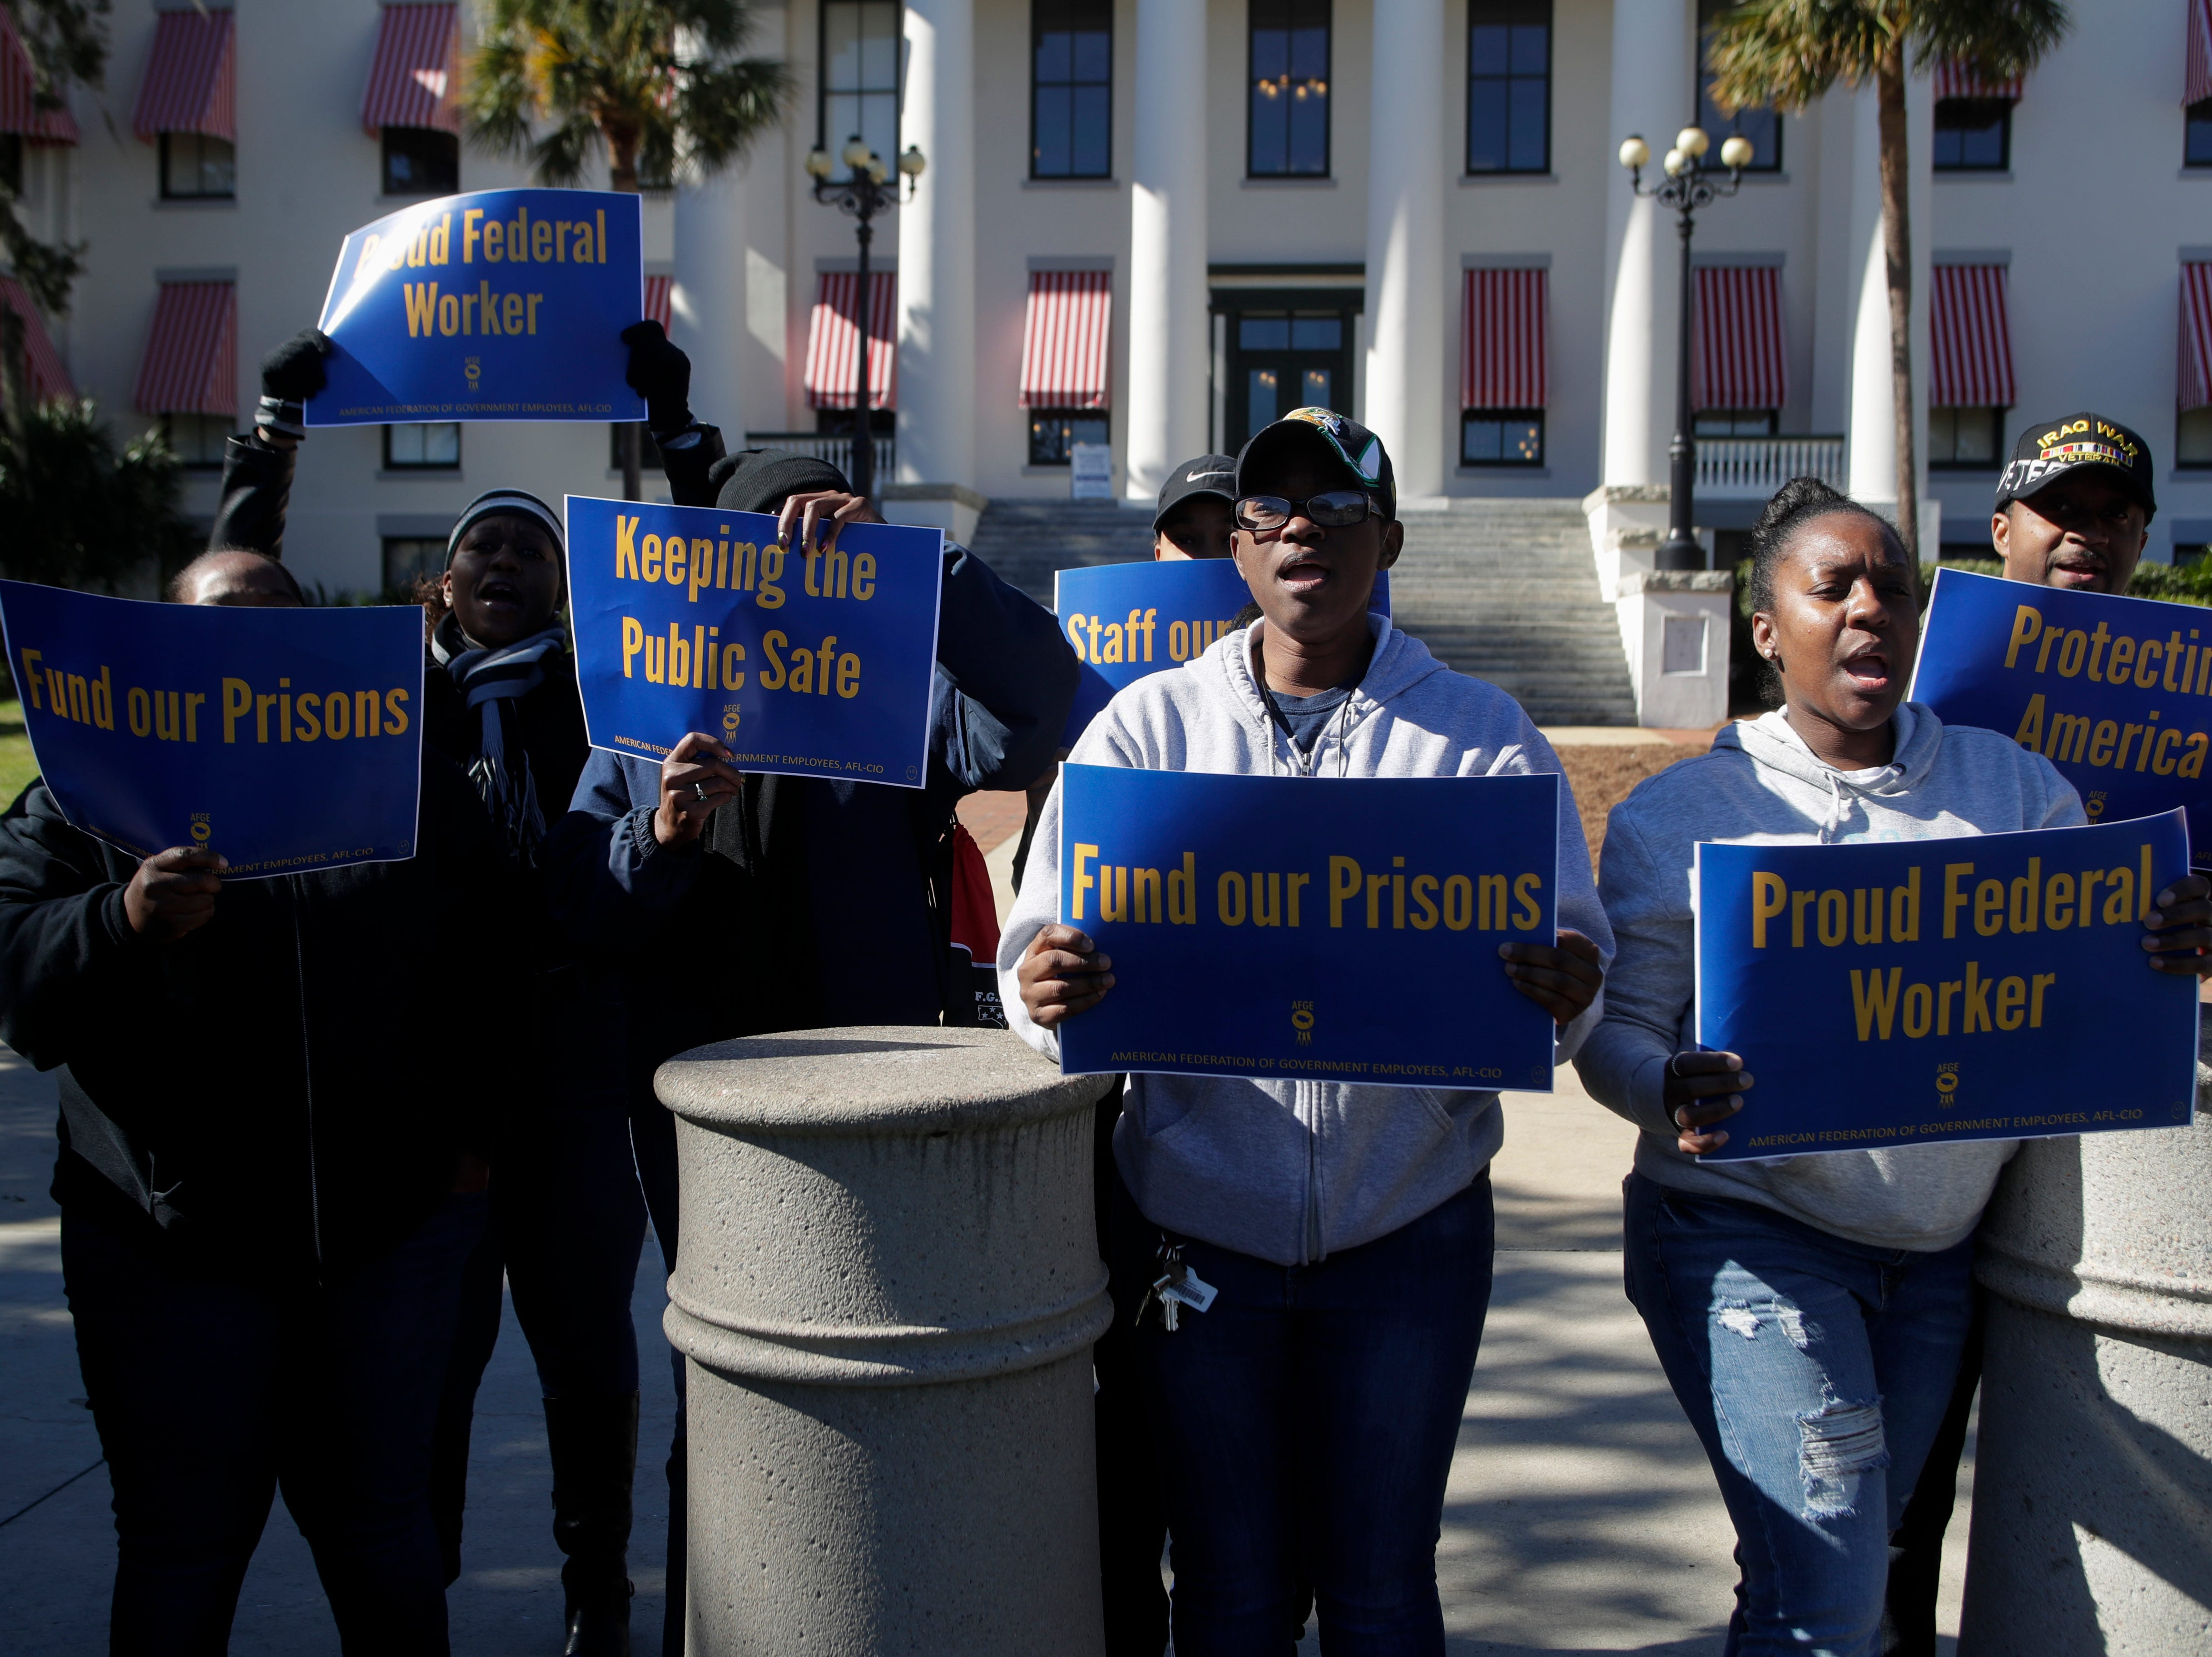 Yamira Richardson, left, and Sondra Freeman, bother Federal Correctional Institution workers protest the government shutdown with their colleagues in front of the Florida Historic Capitol Thursday, Jan. 10, 2019.